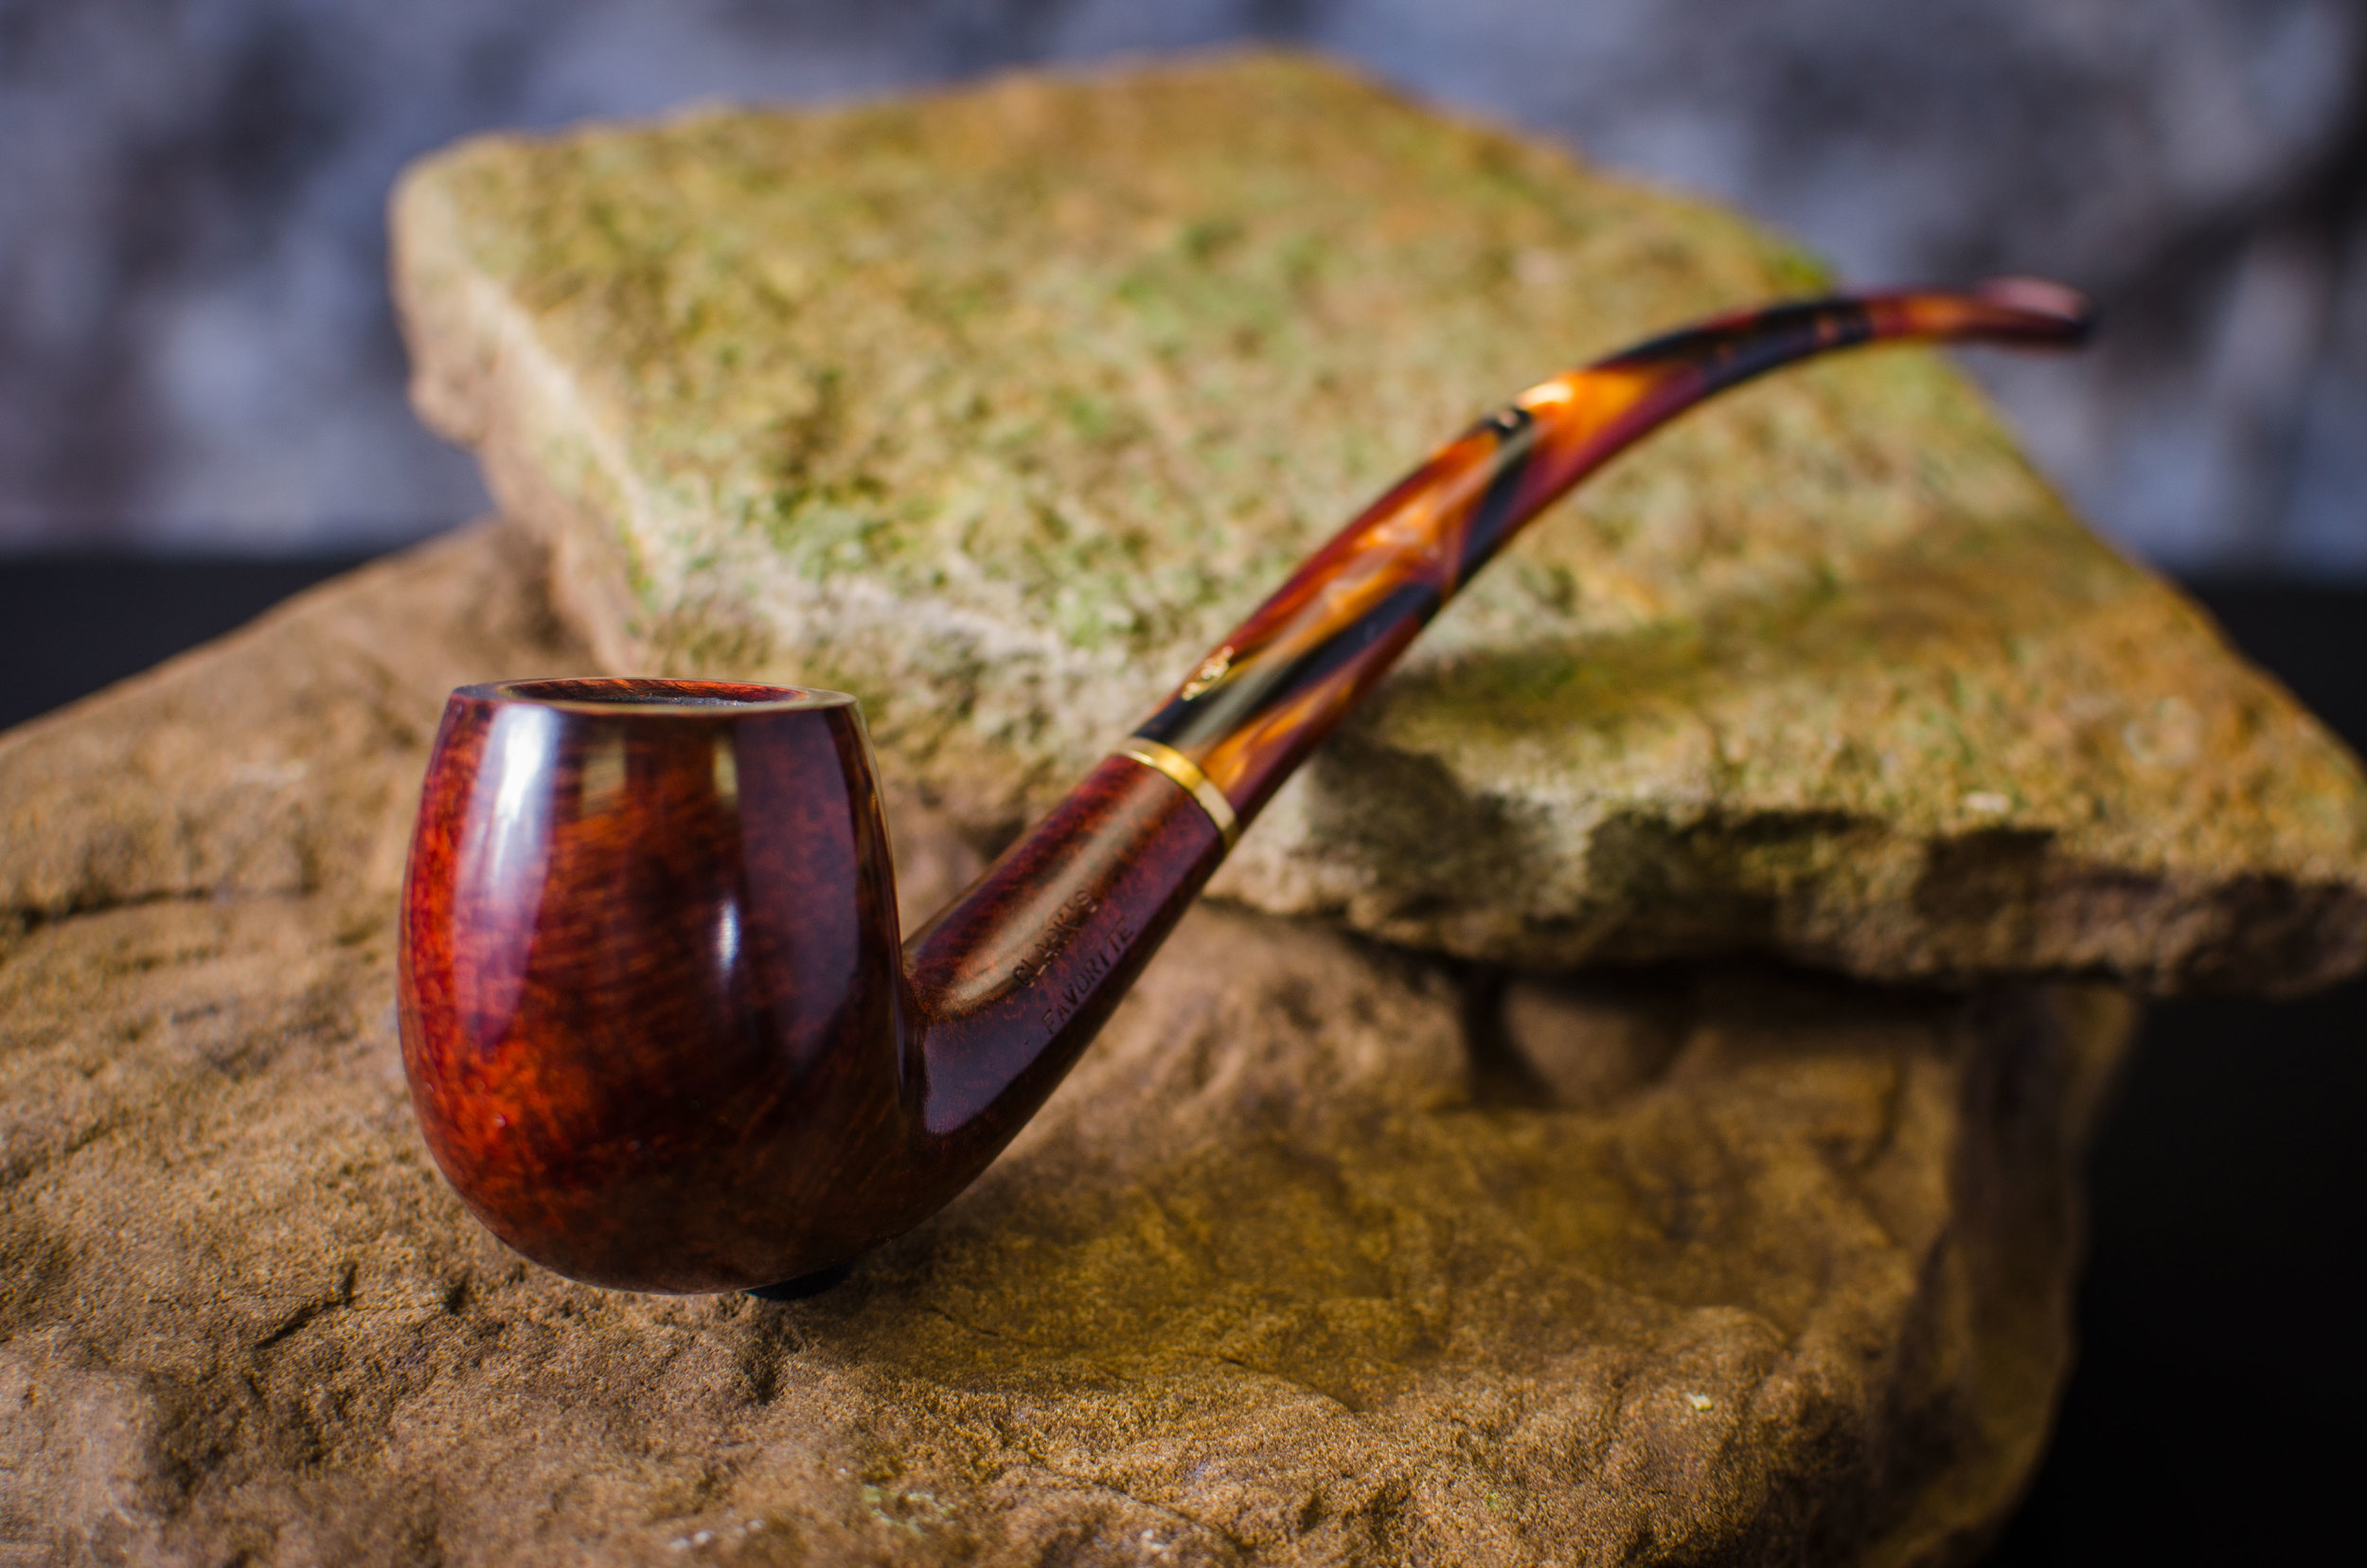 Savinelli: Clark's Favorite Smooth